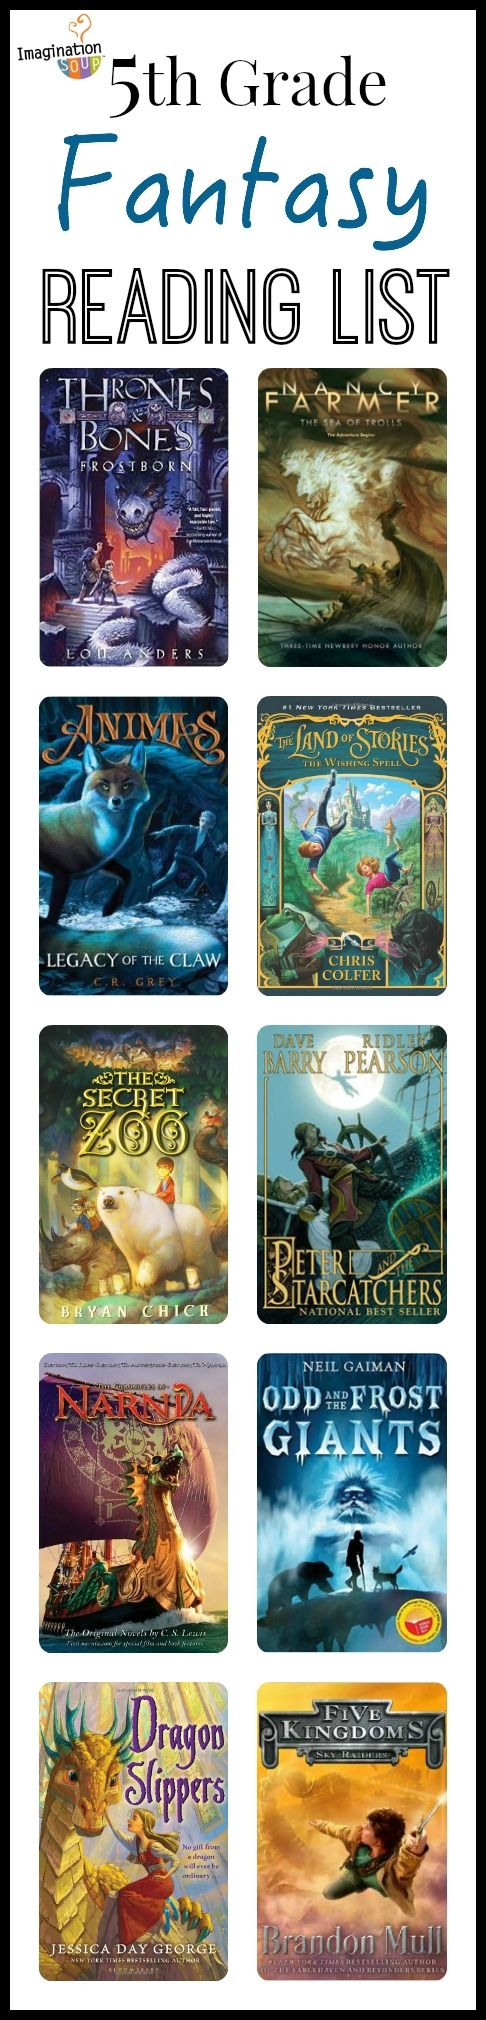 5th grade summer reading list - fantasy chapter books